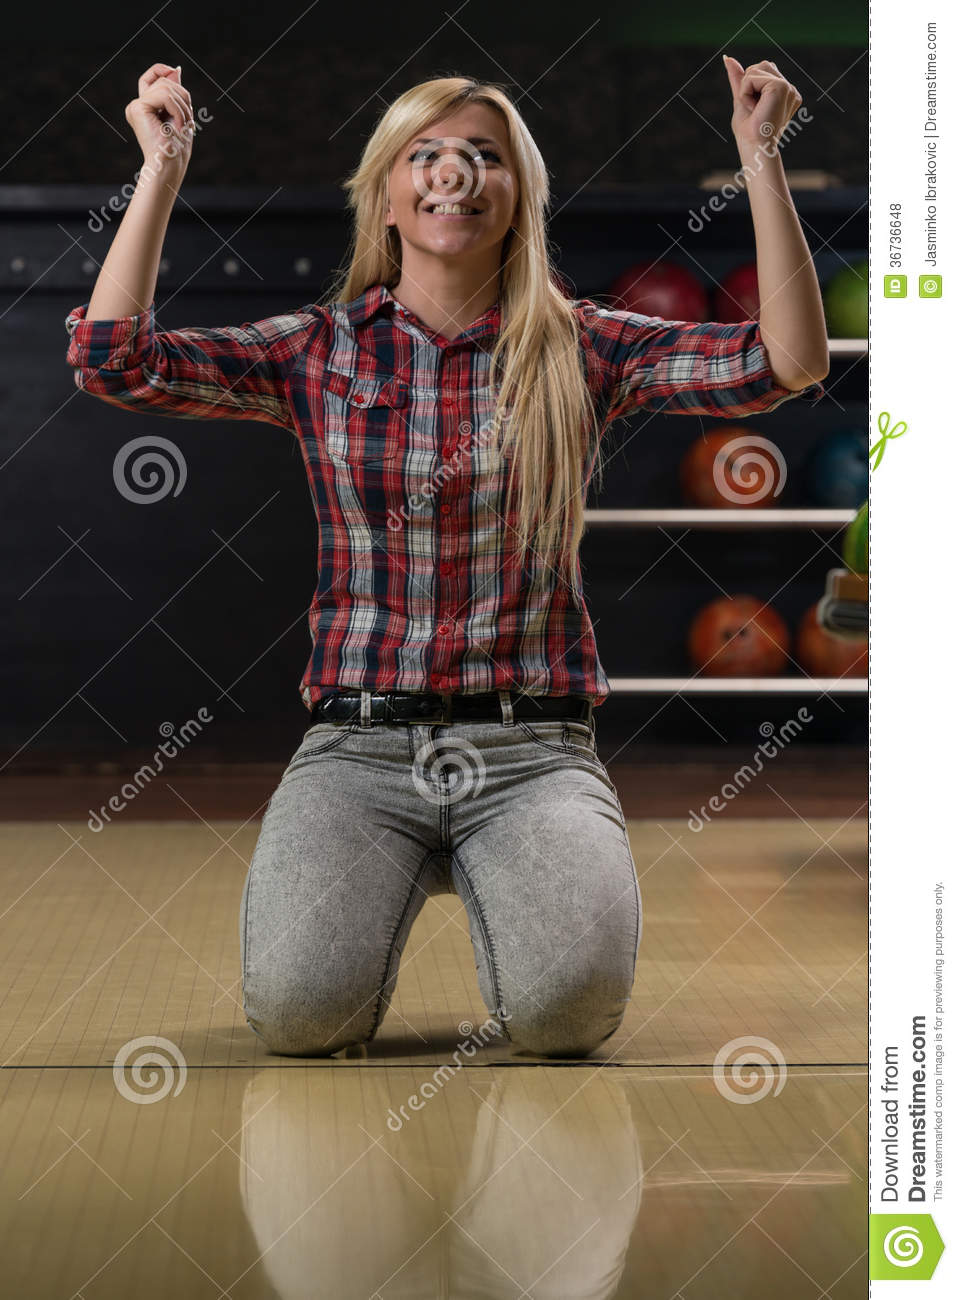 Ecstatic Bowling Women With Raised Hands Stock Photo